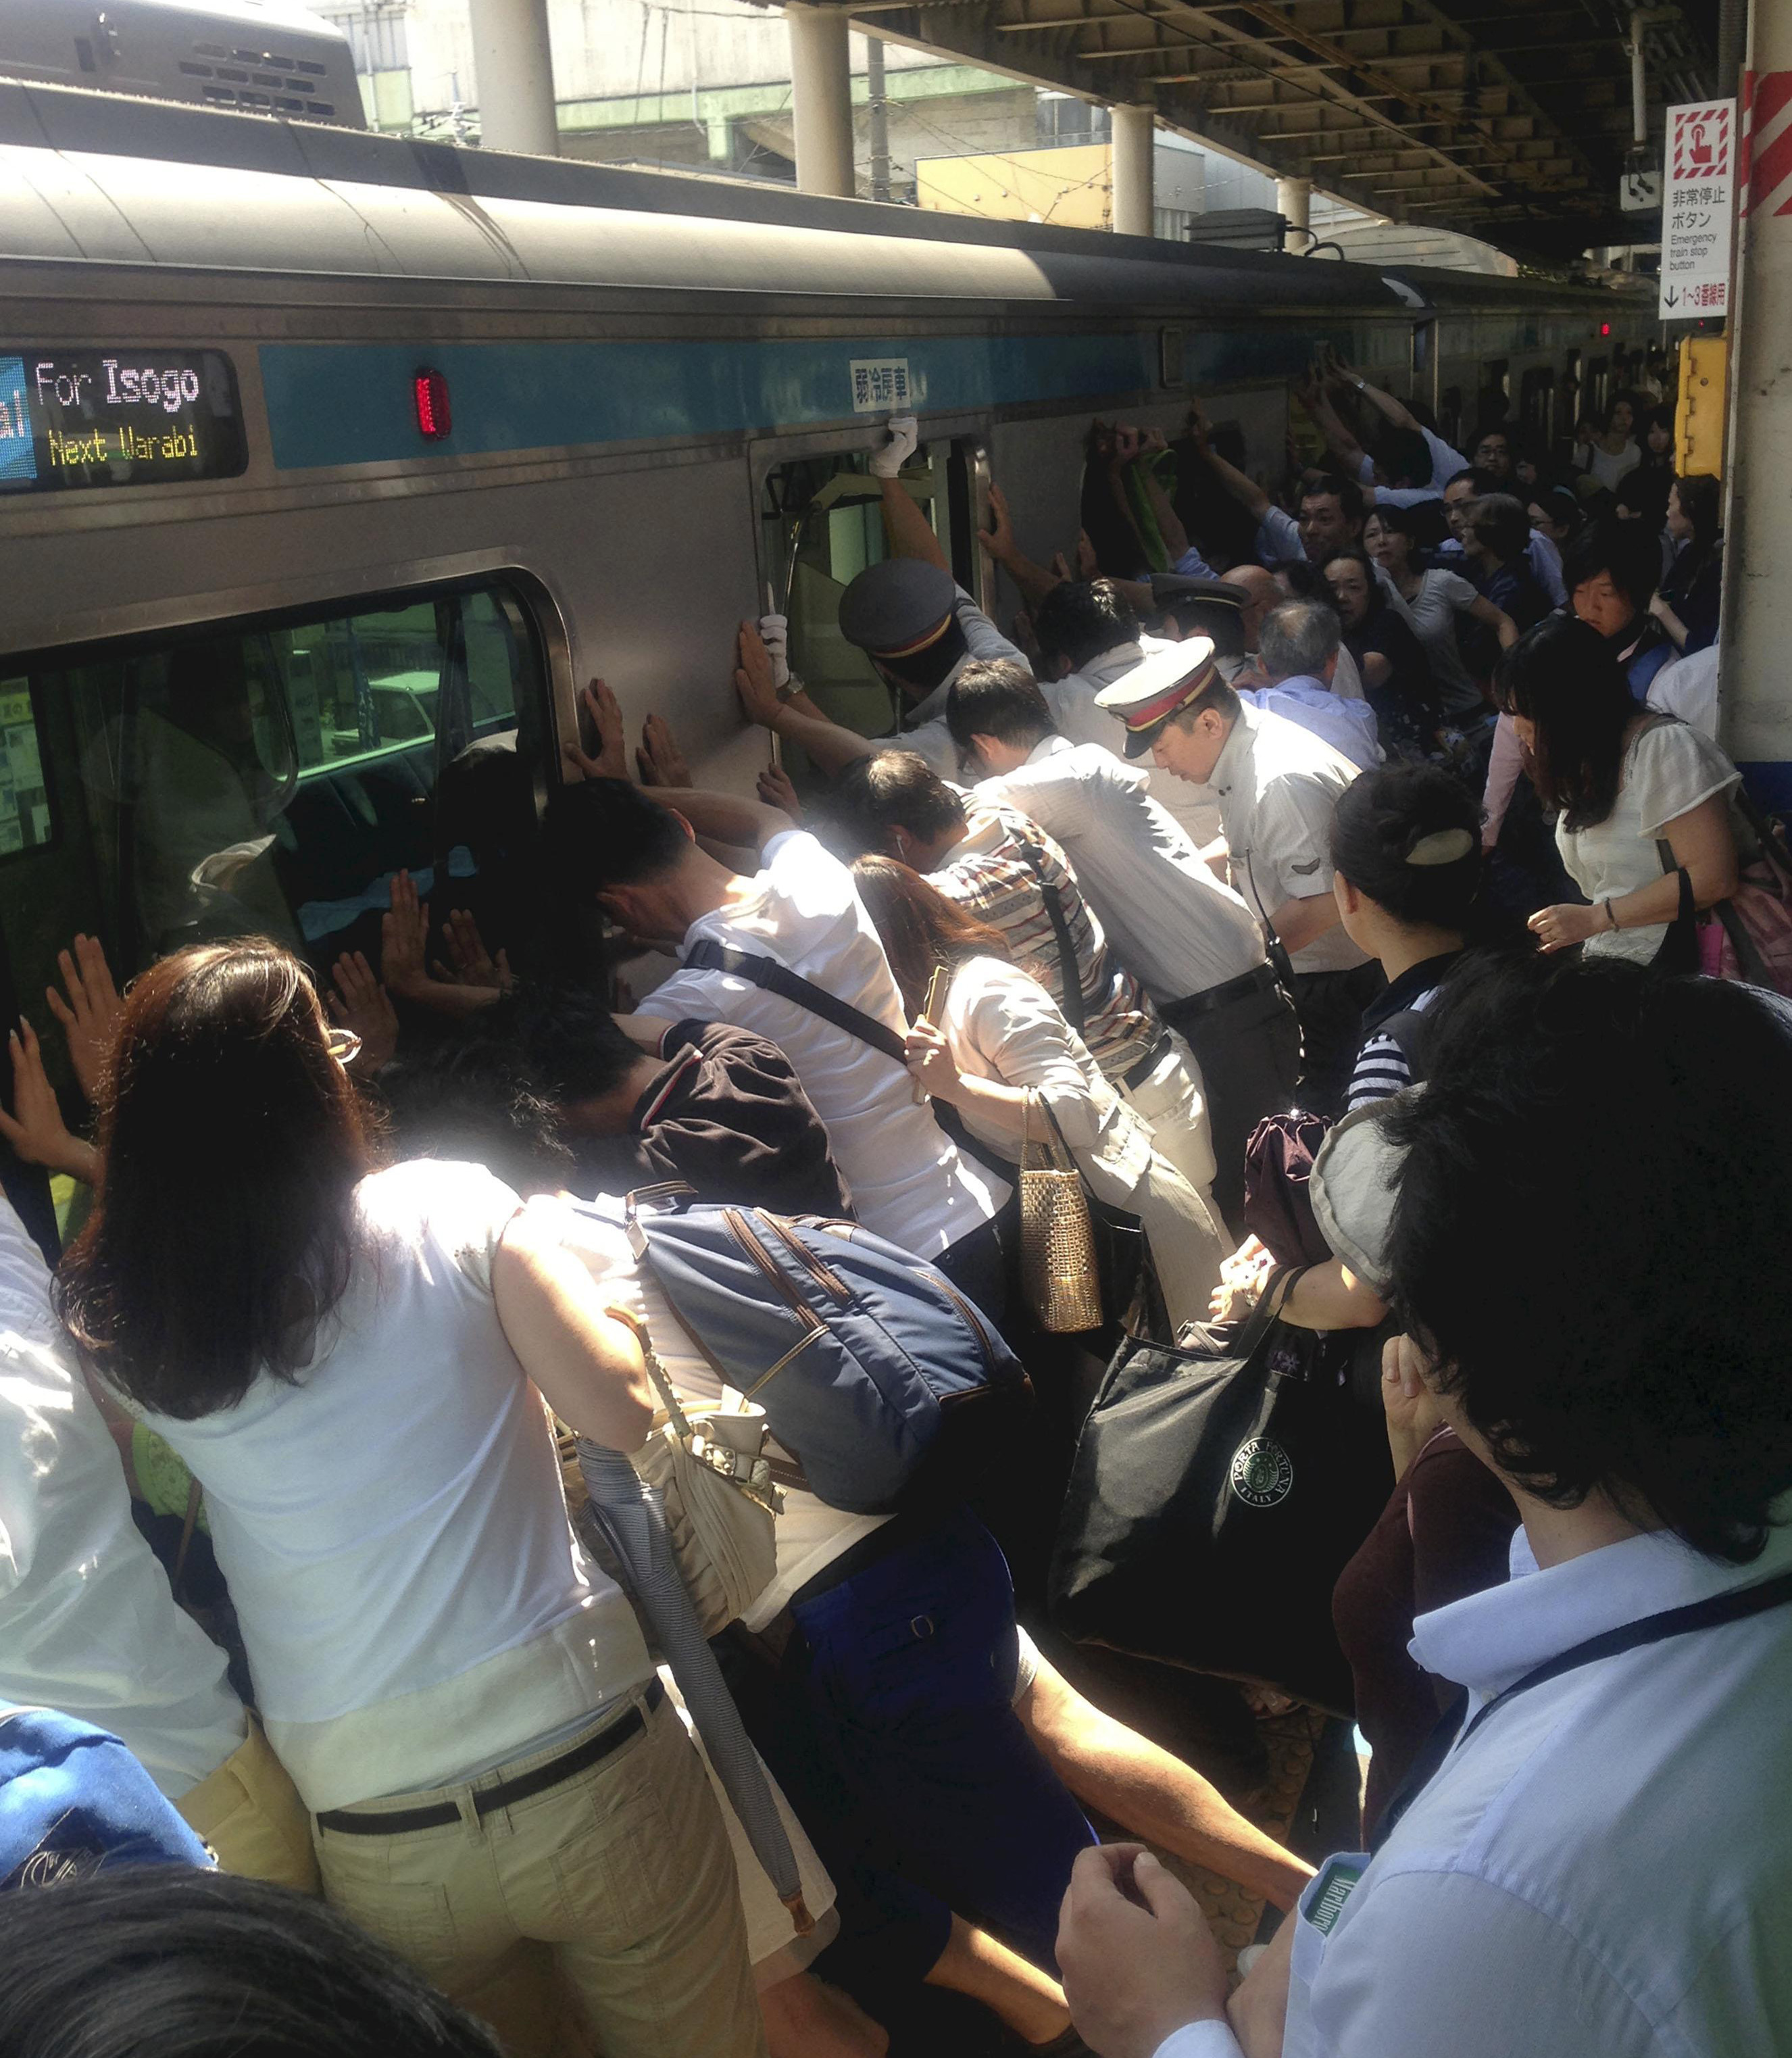 PHOTO: Japanese Commuters Tilt Train To Free Trapped Woman